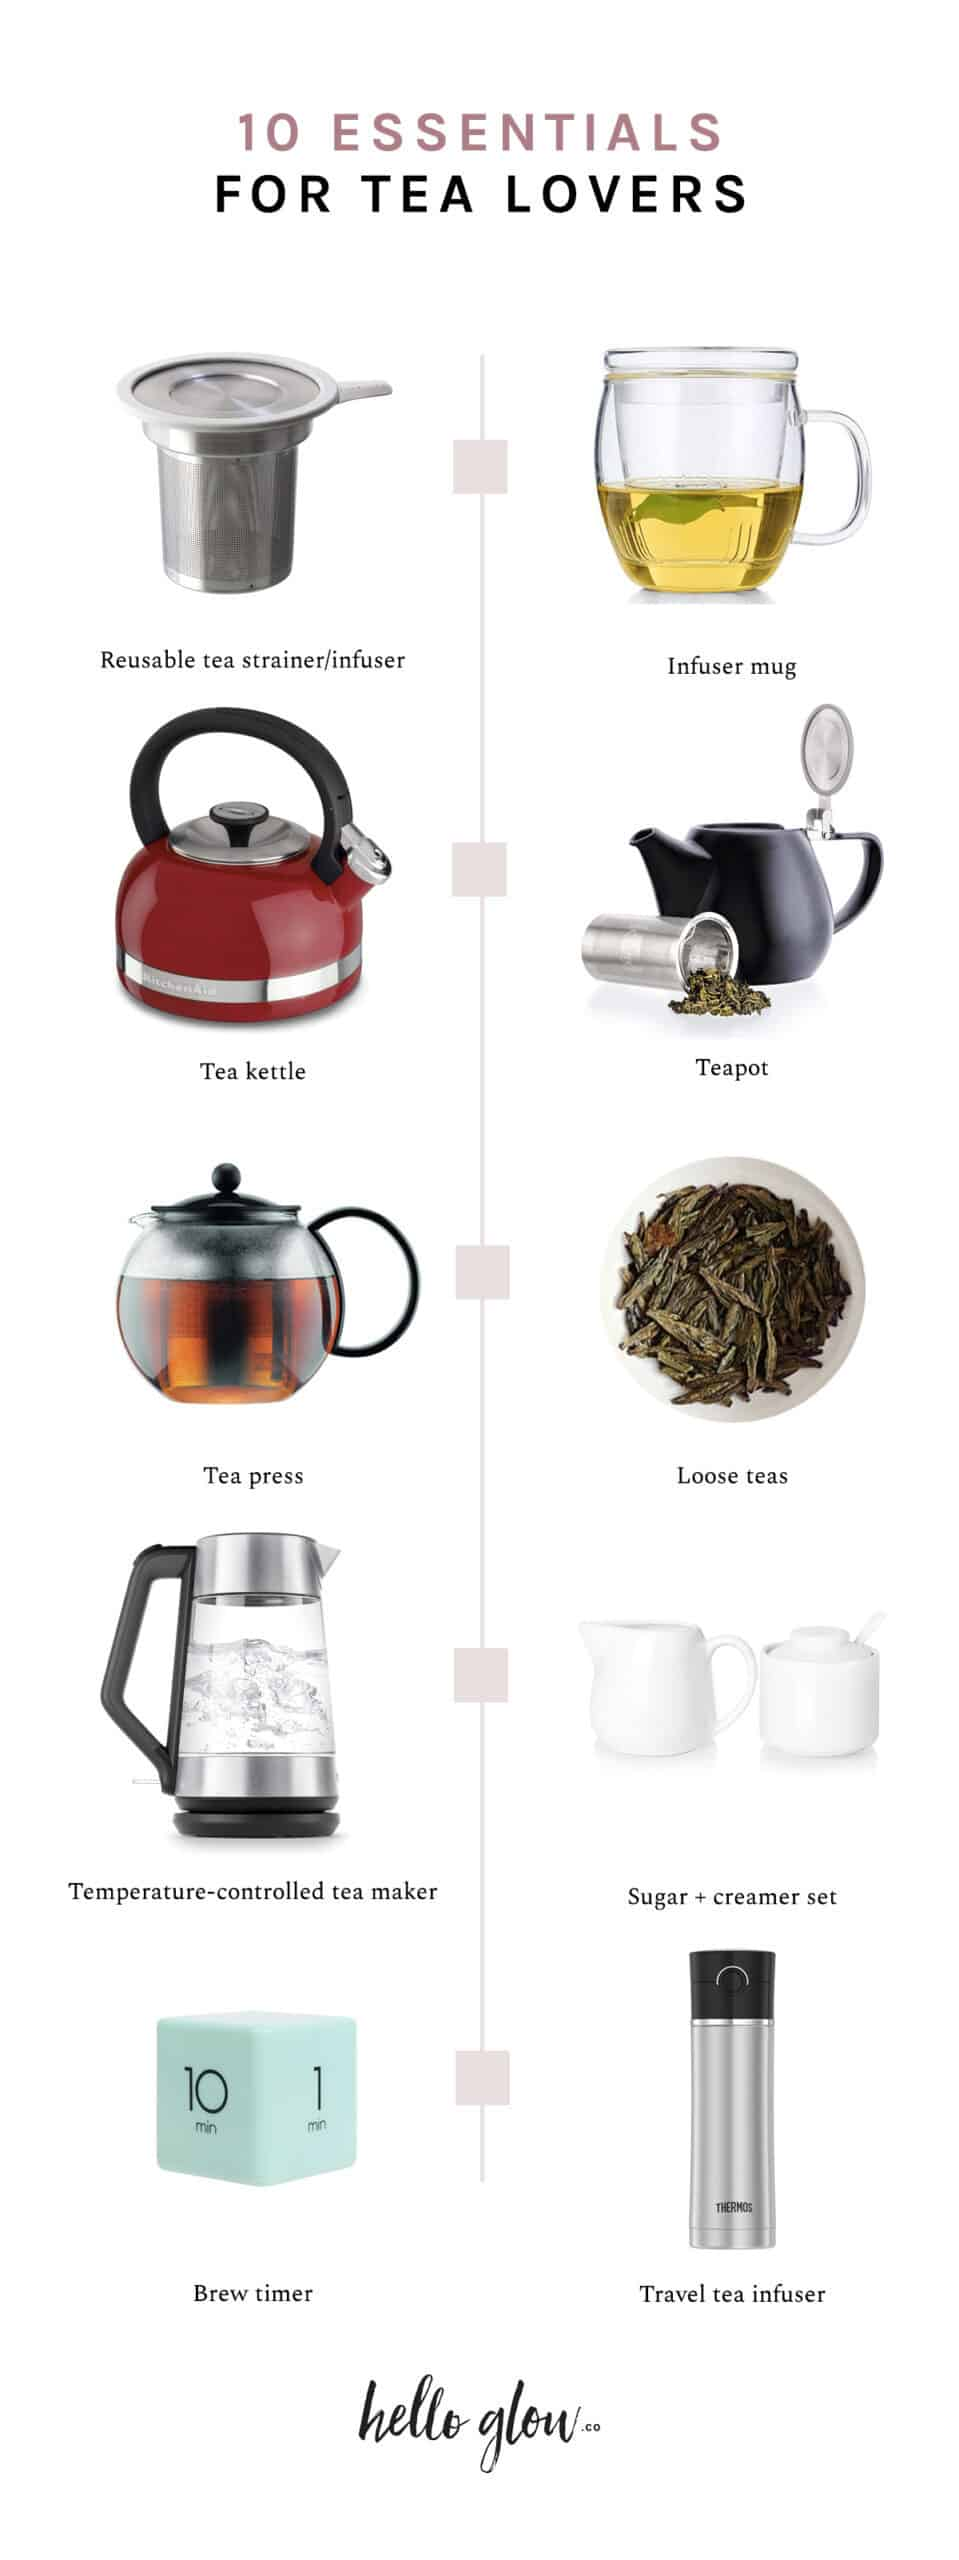 10 Essentials for Tea Lovers - HelloGlow.co